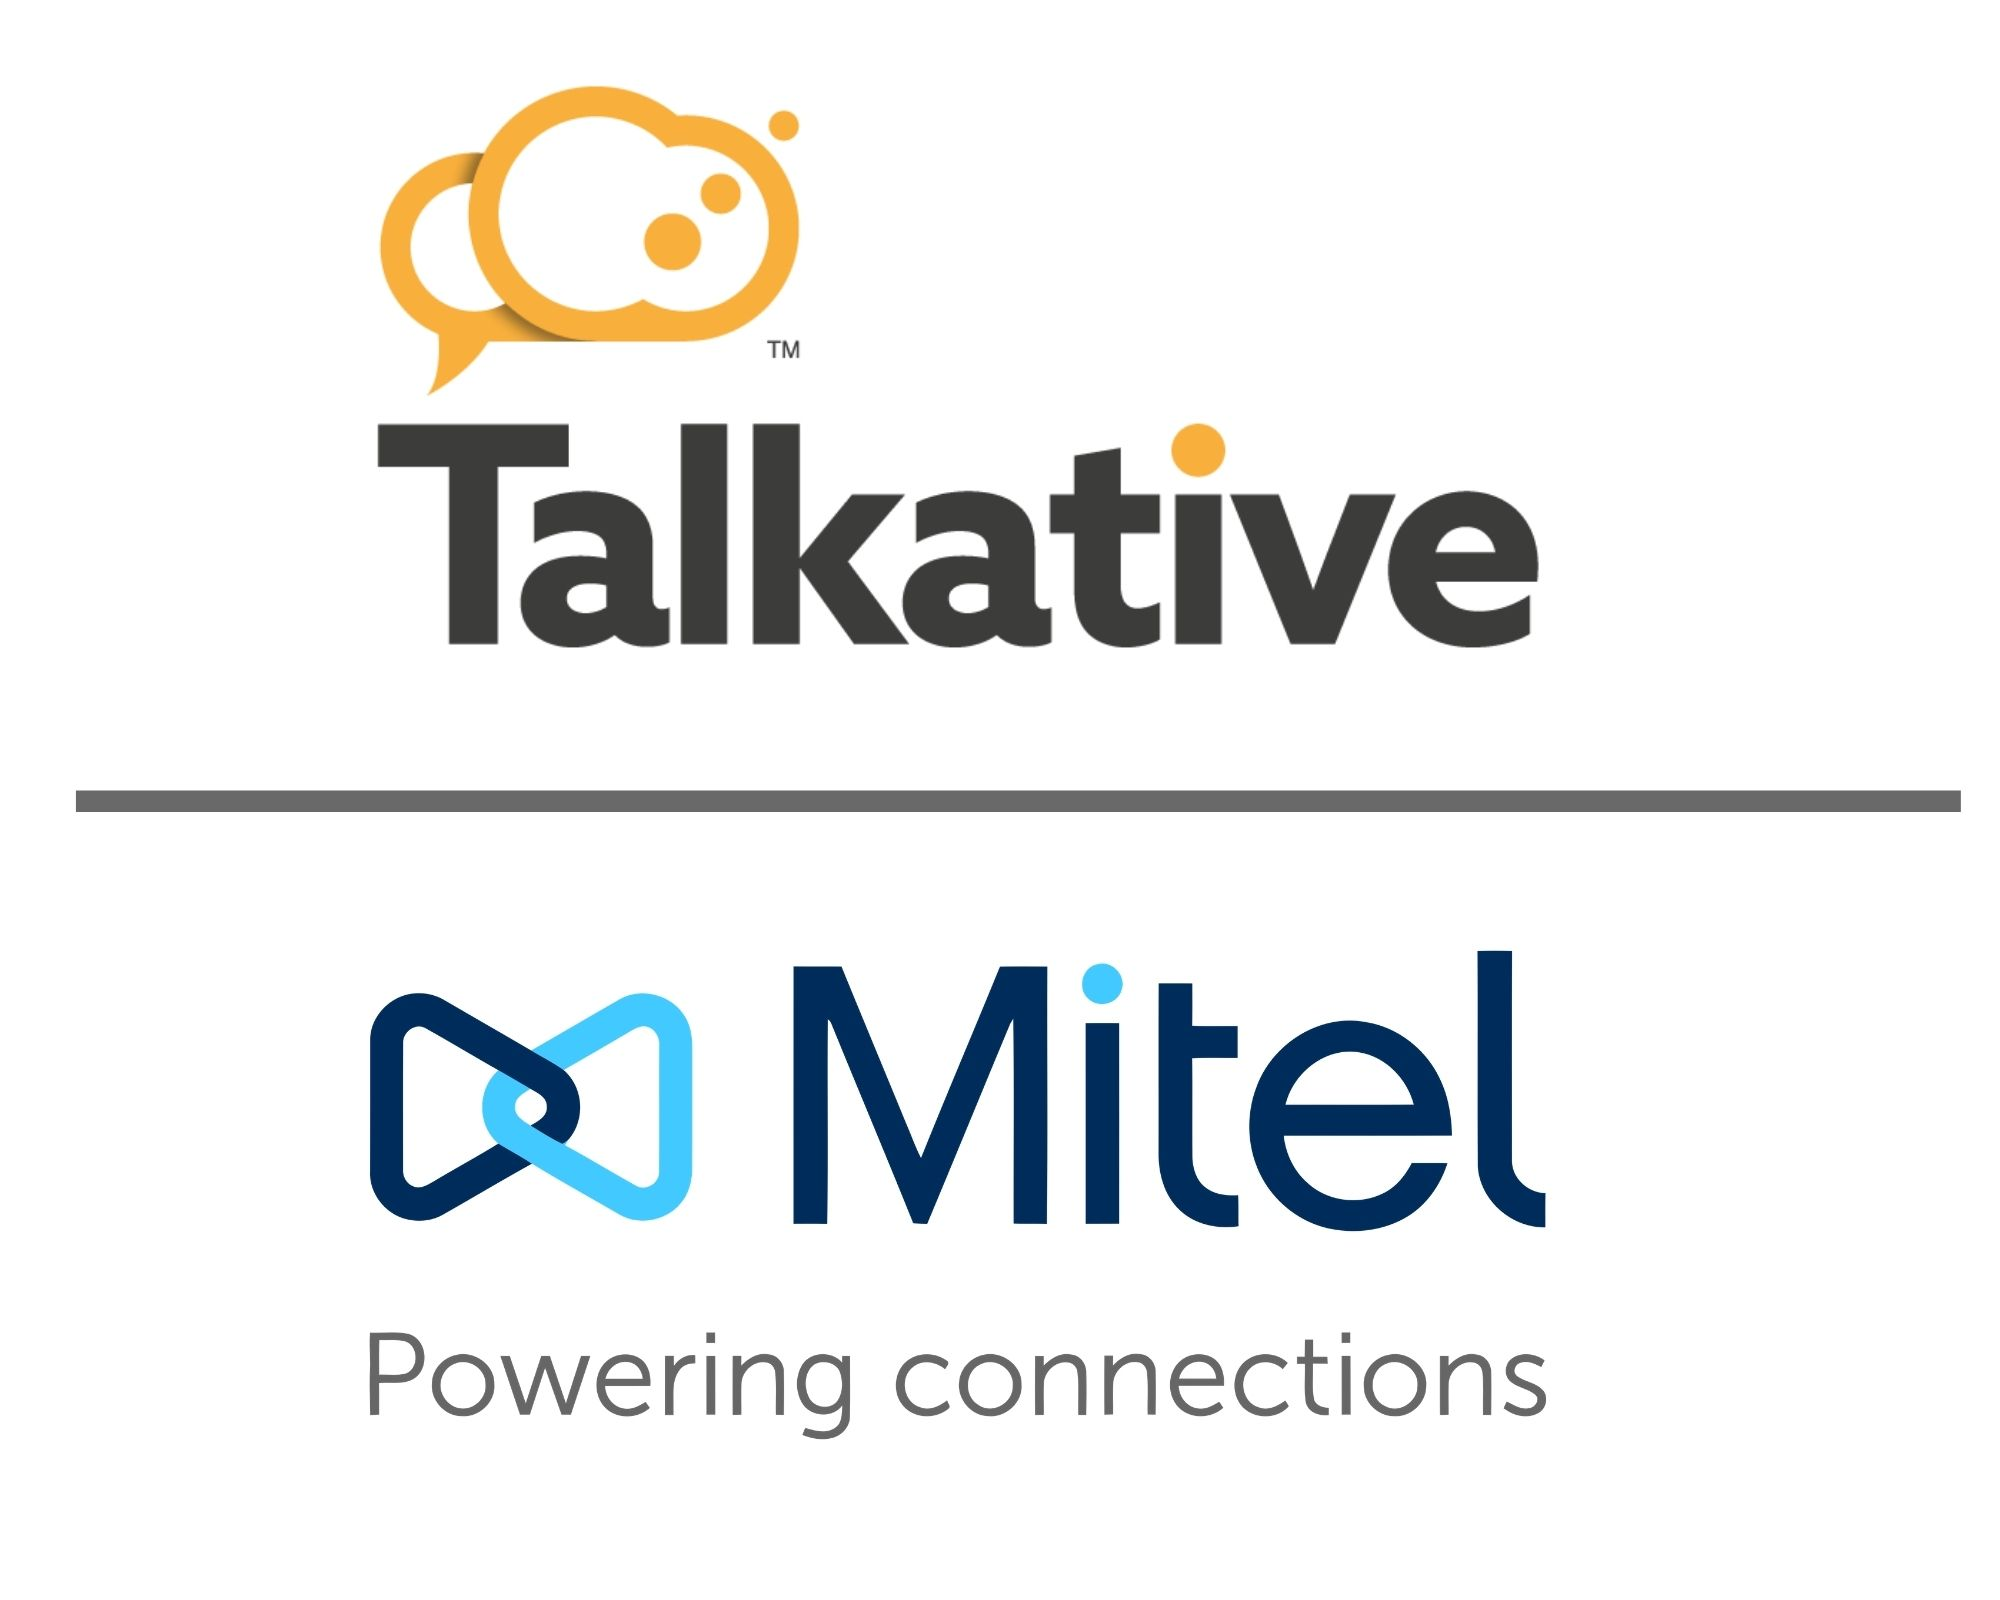 Talkative solutions for Mitel